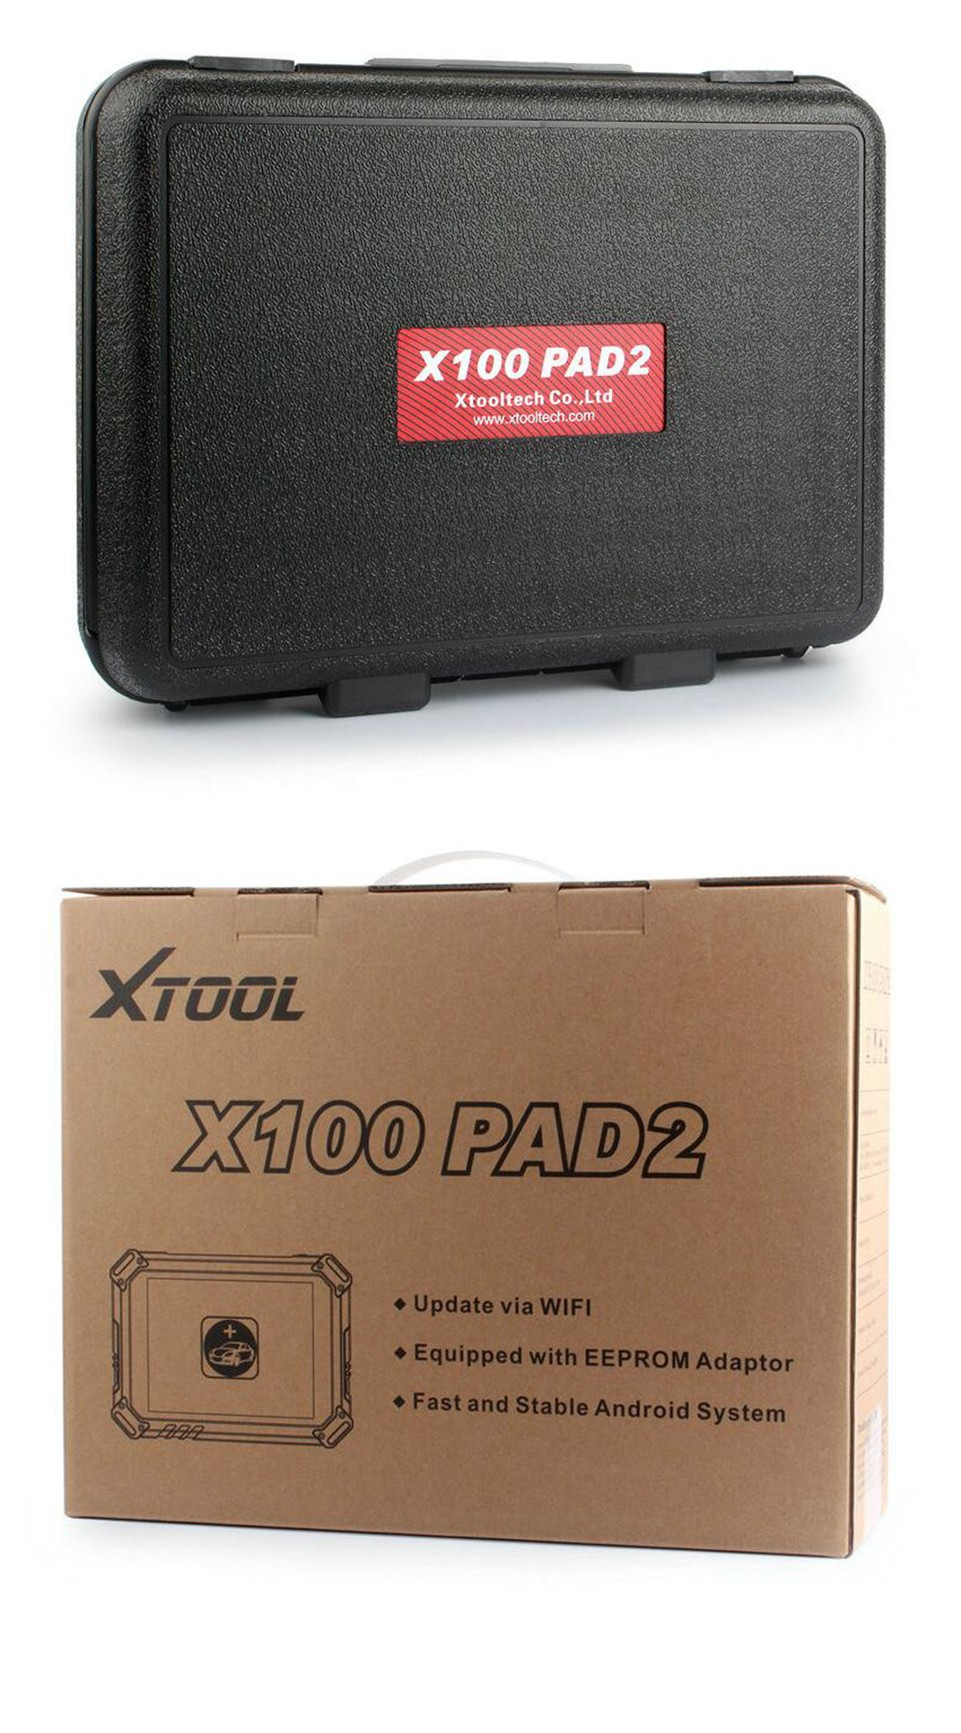 Original X100 PADII for XTOOL X100 PAD X100 pad 2 Better than X300 Pro3 Auto Key Programmer with Special Function Update Online